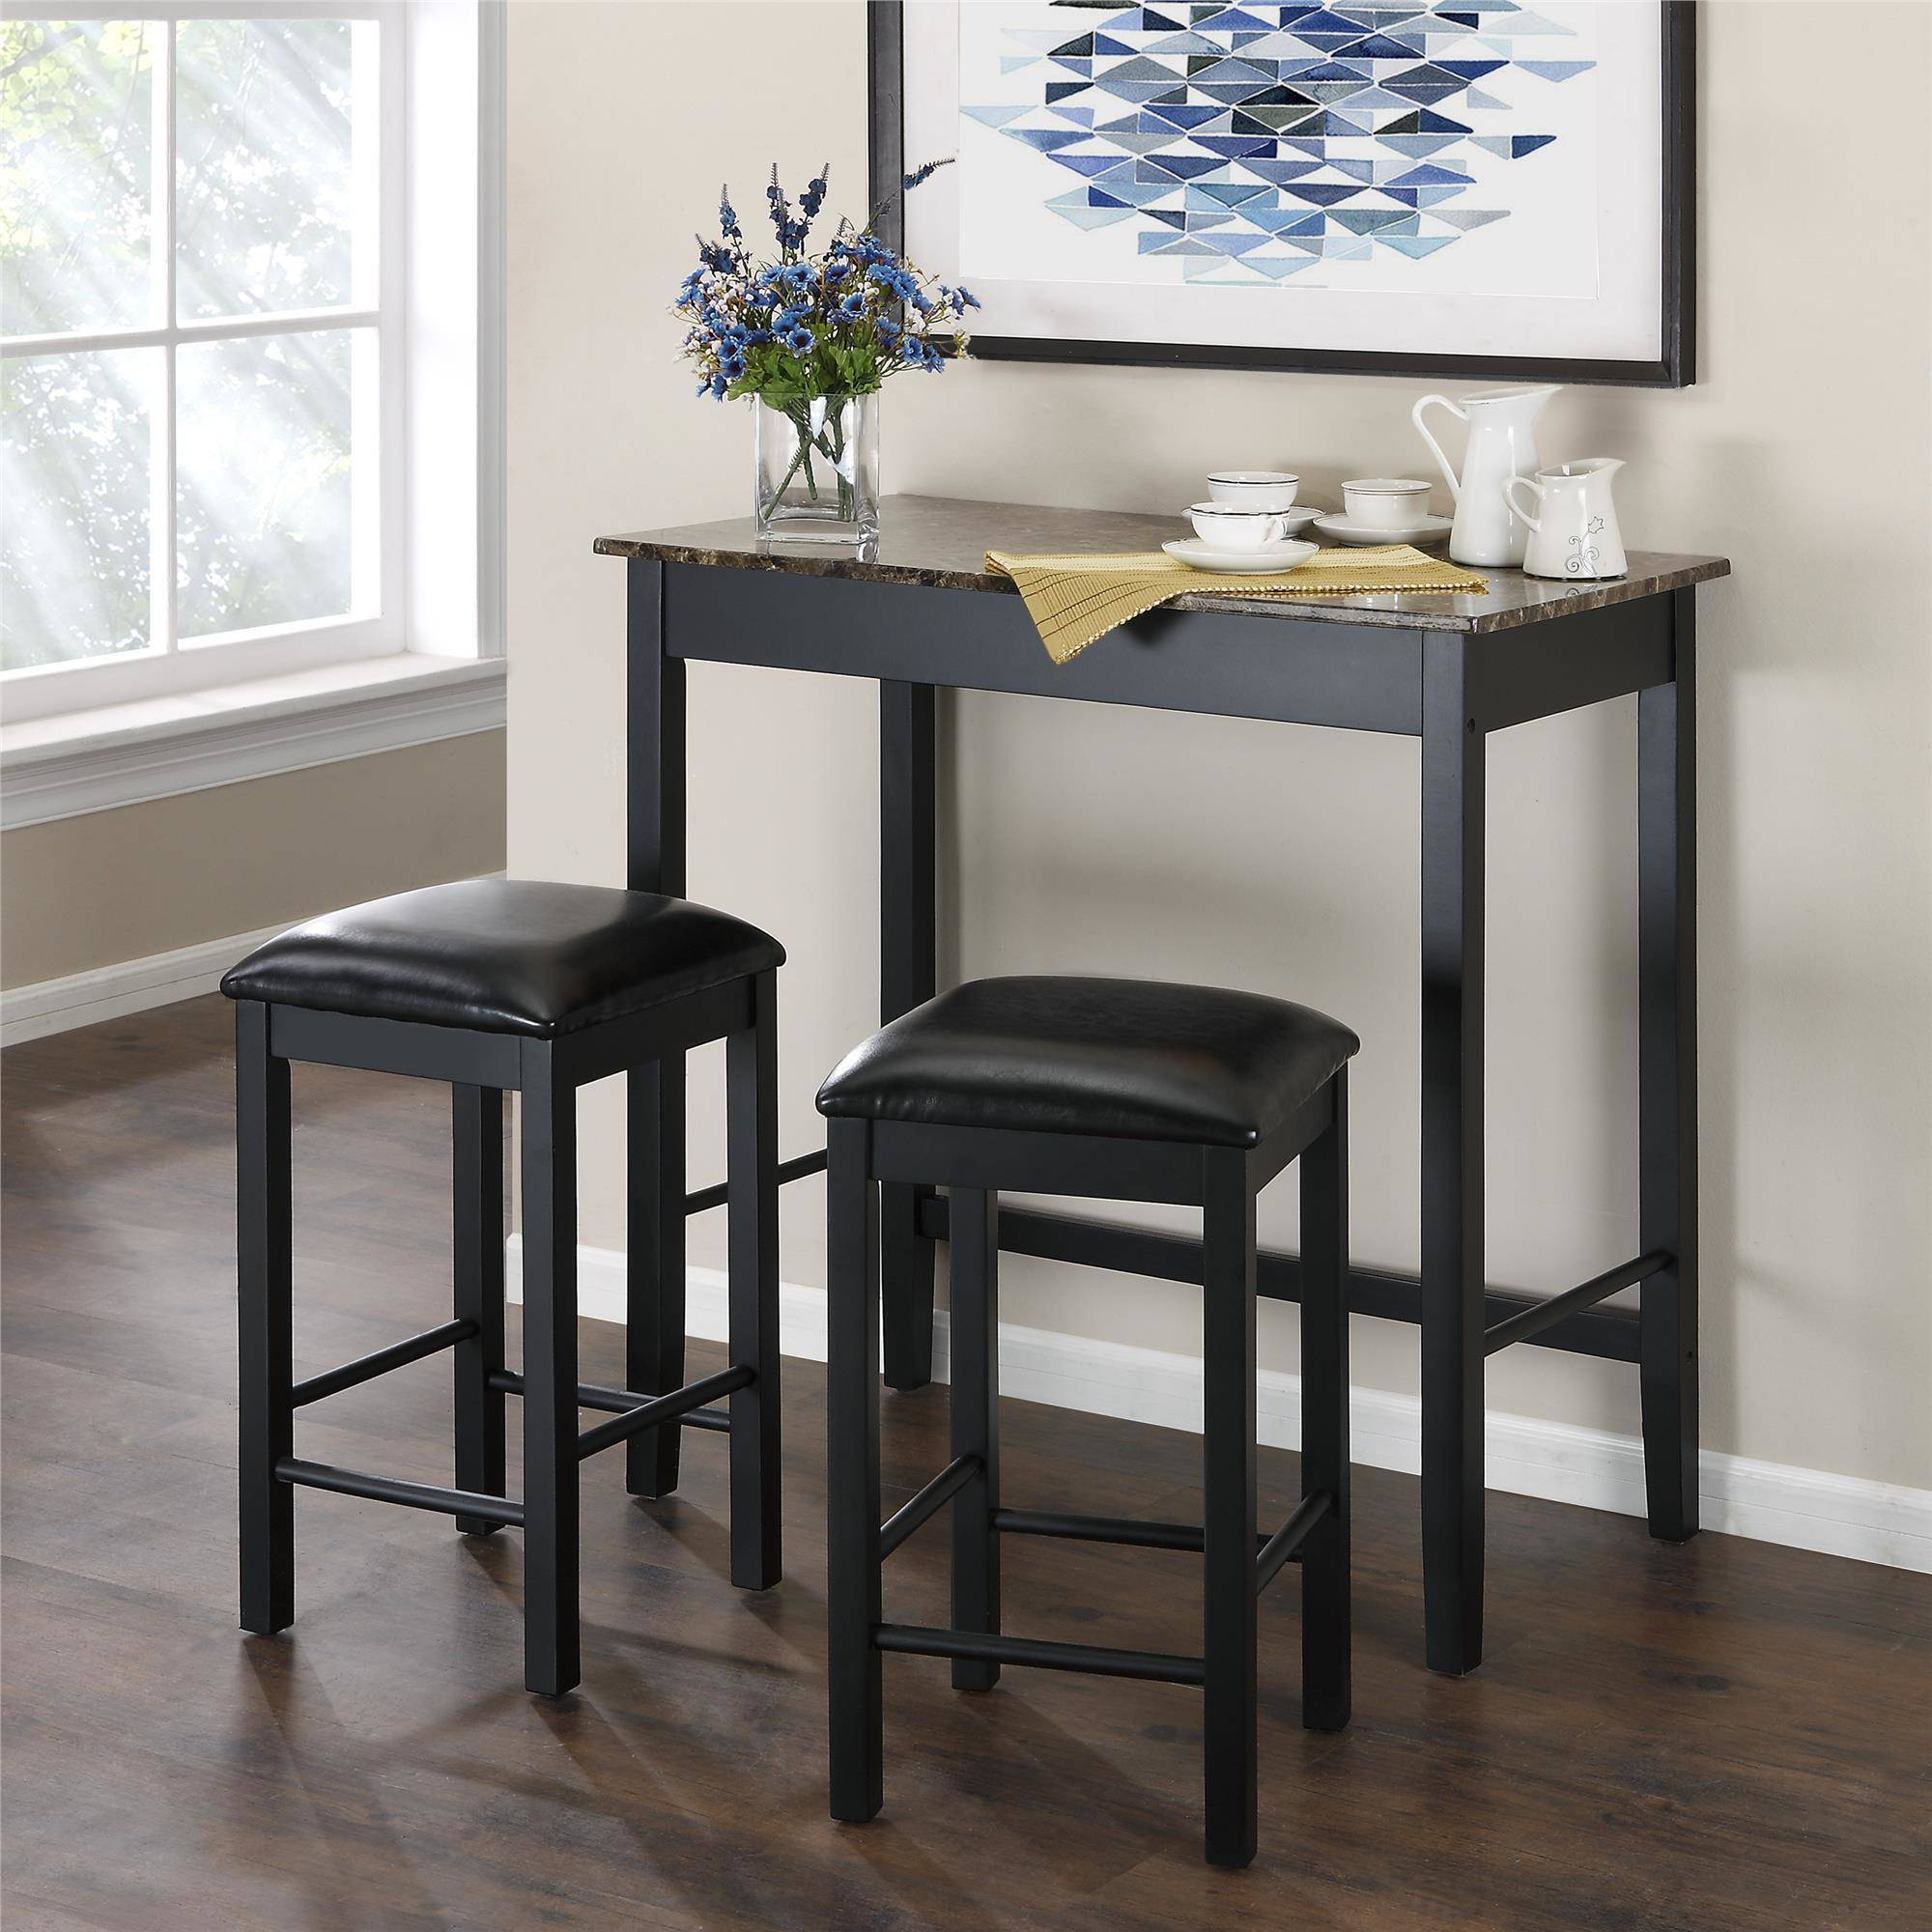 small dining room table and chairs kitchen u0026 dining furniture - walmart.com ovyknpt